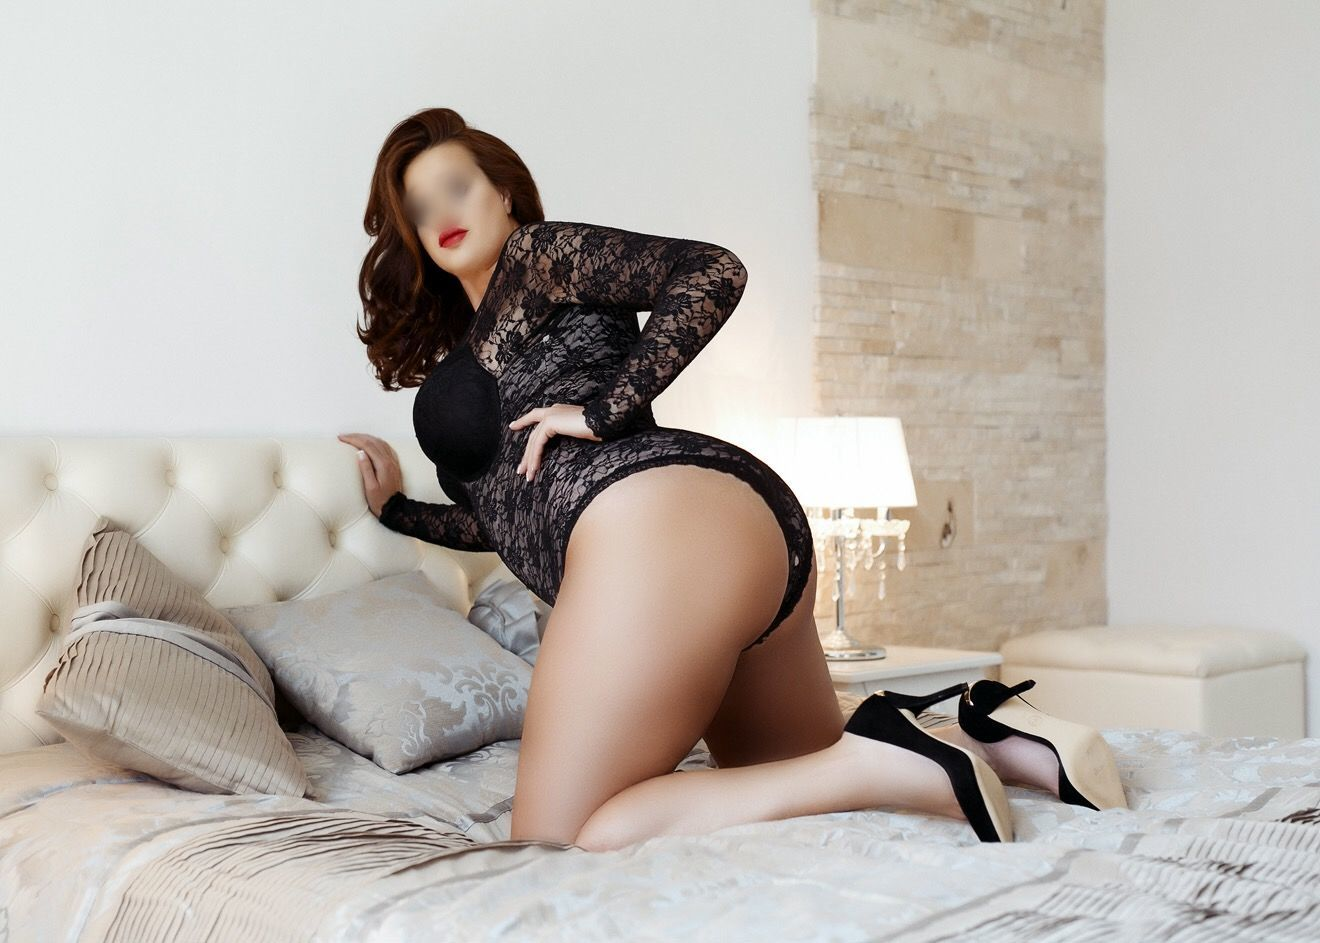 Massage Escort Oslo Thai Massasje Rogaland